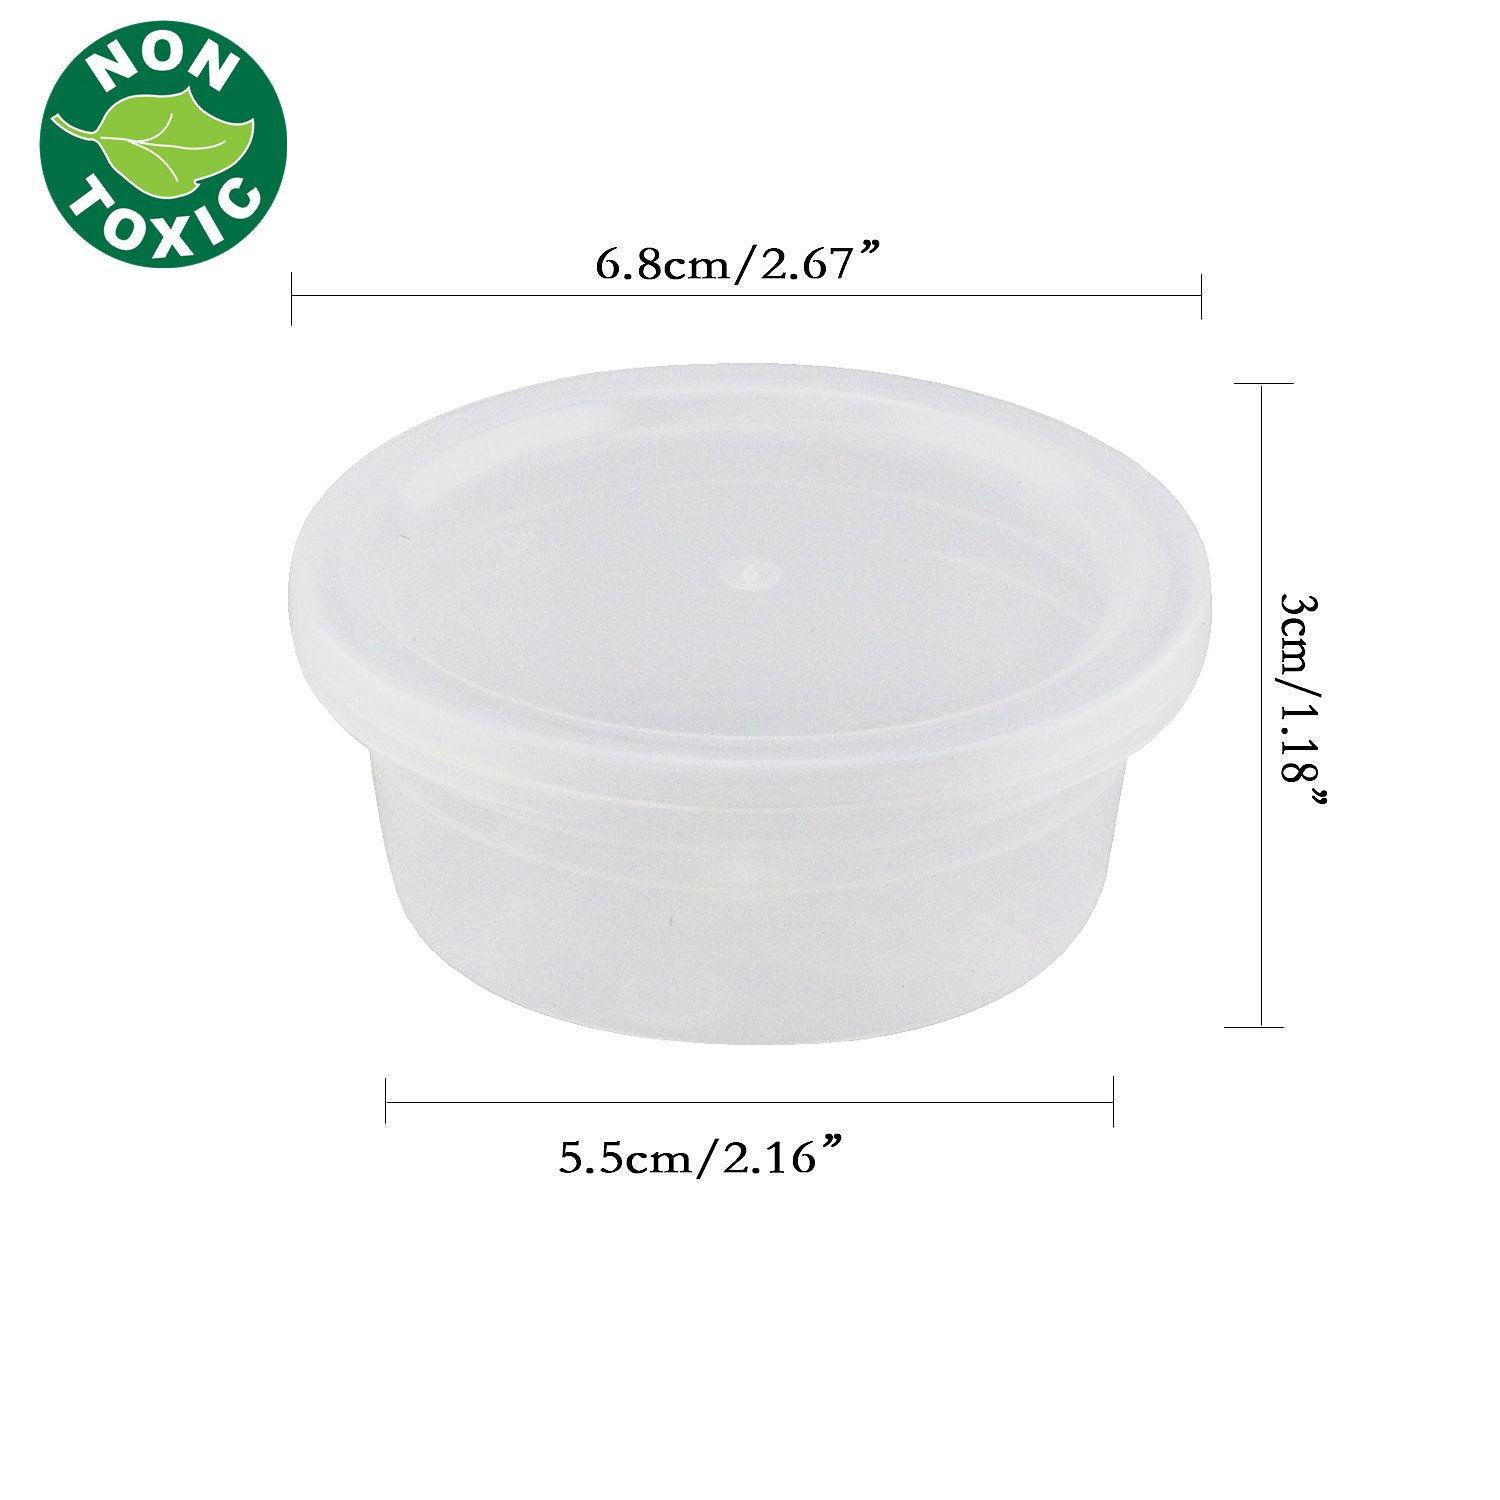 Slime Storage Jars - 15 Pack Foam Ball Storage Containers with Lids for All Your Glue Putty Making